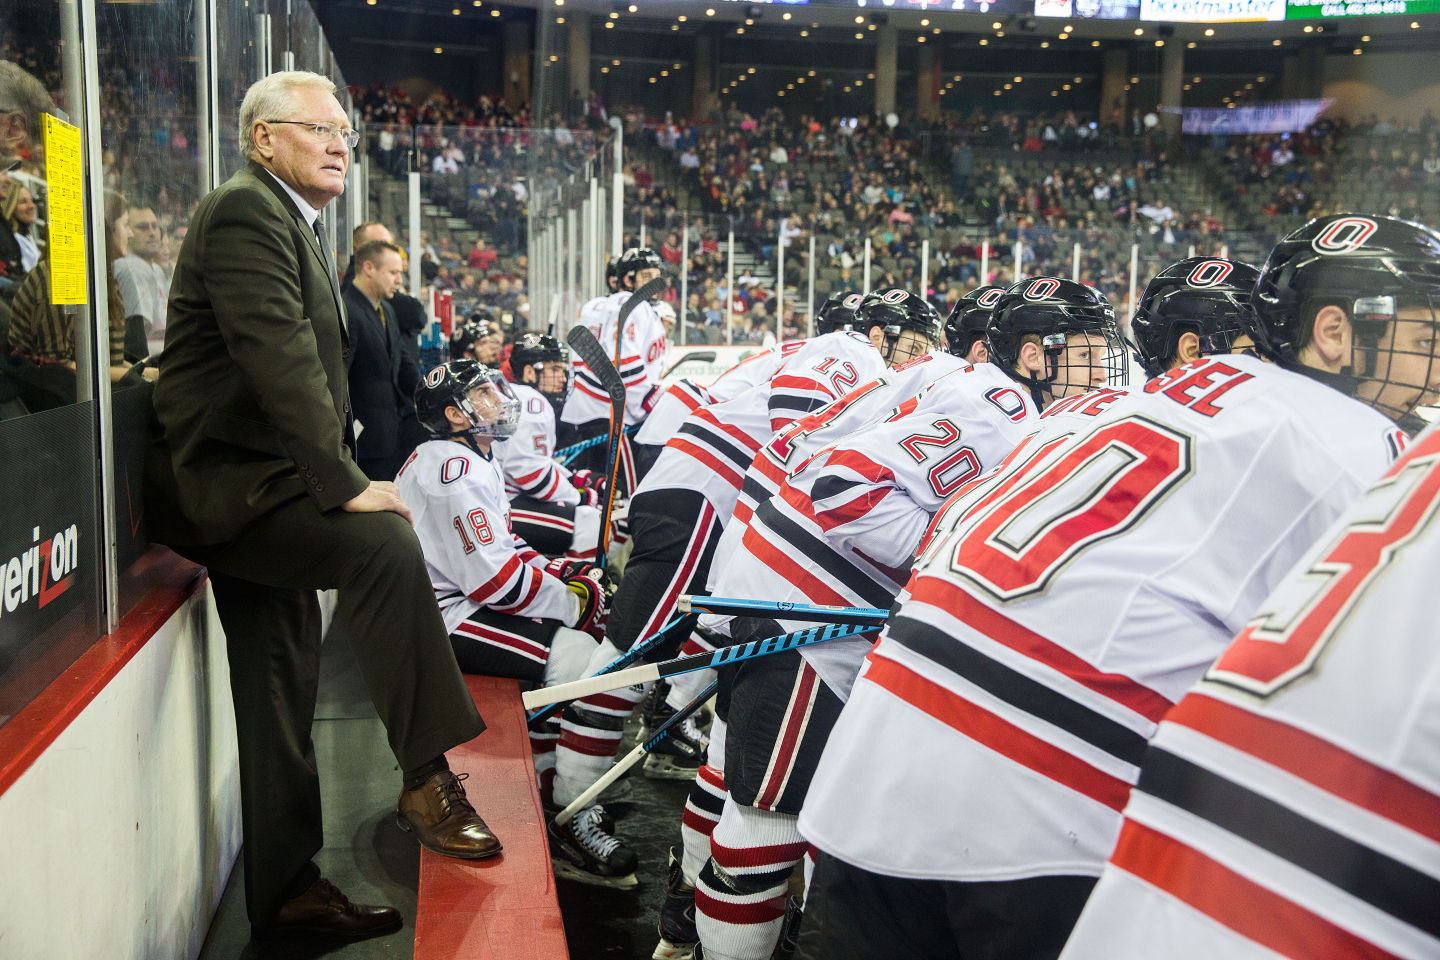 NCHC: With Goals Close, Mavericks Don't Plan To Let Up